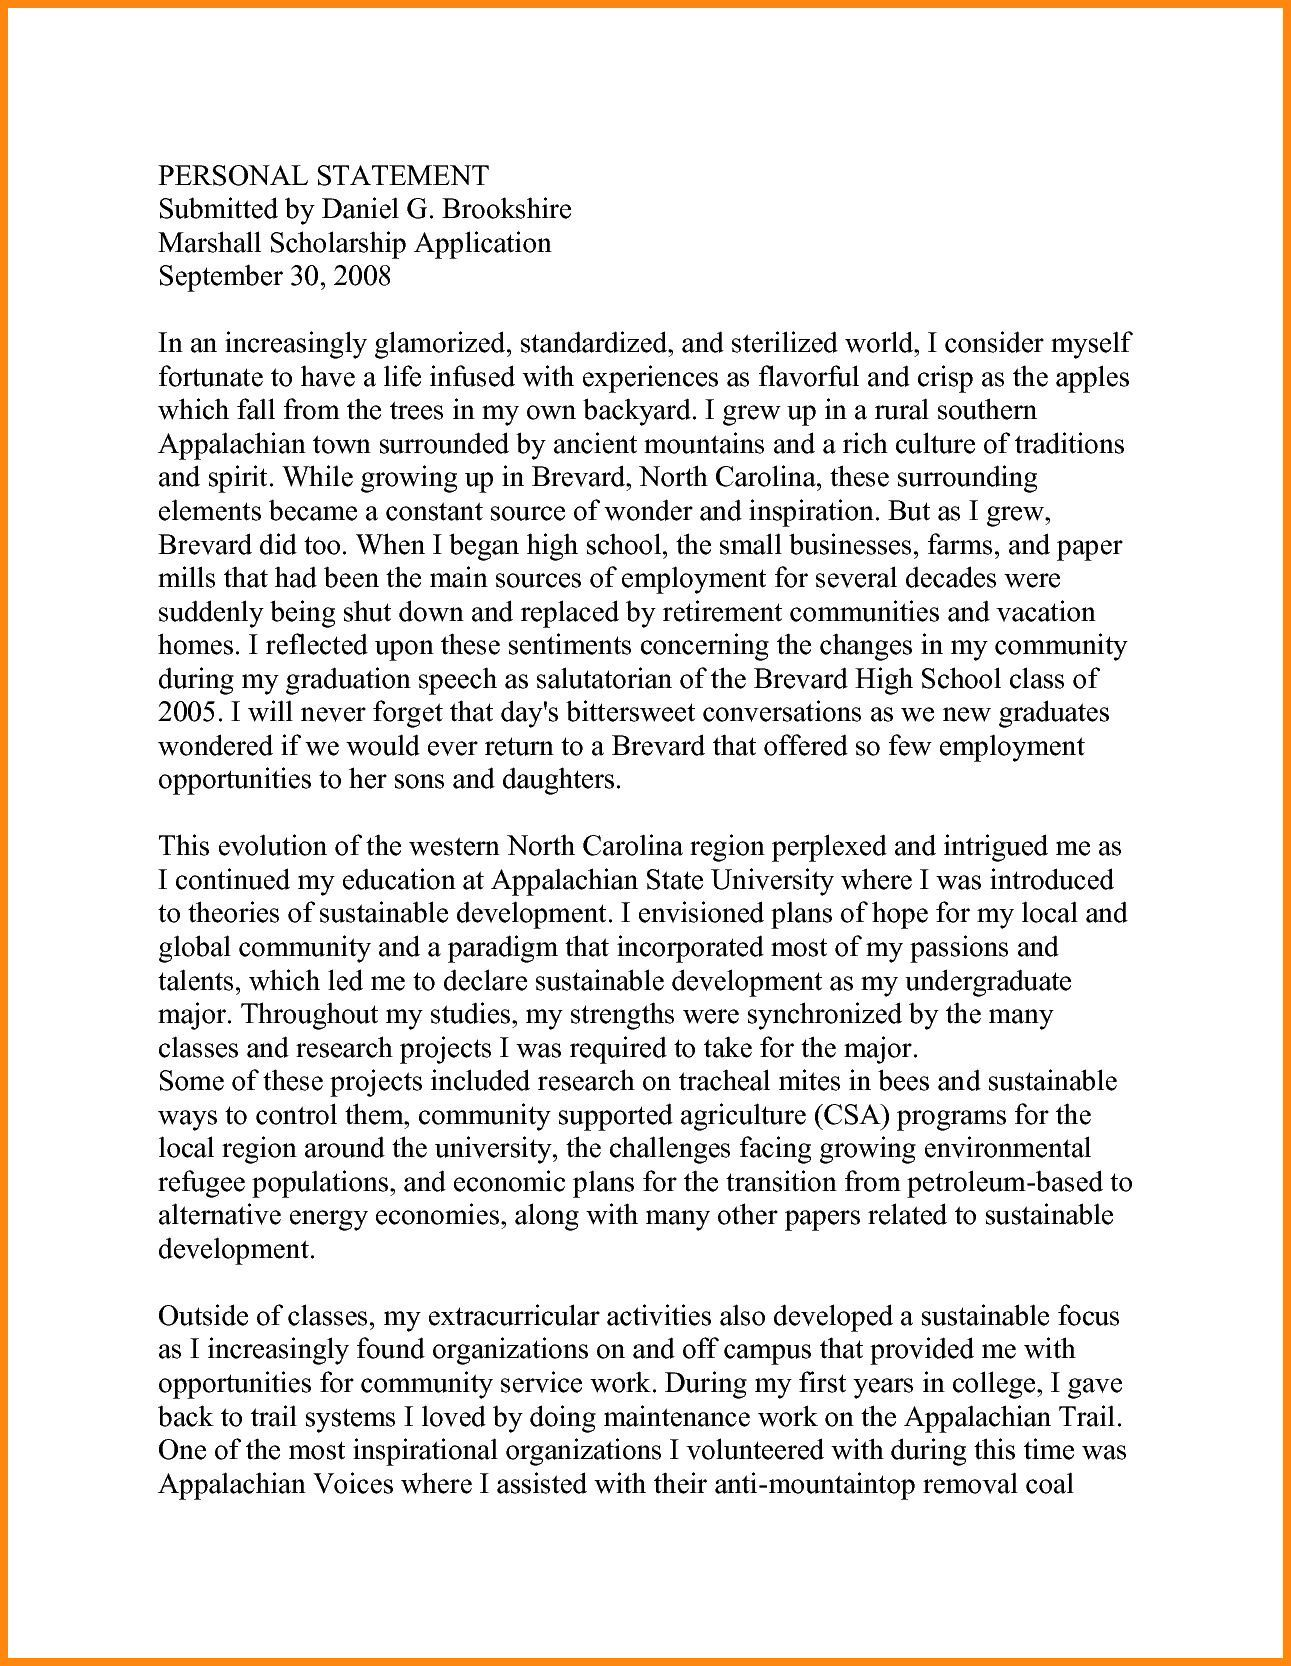 Masters of Social Work Personal Statement Sample in 2020